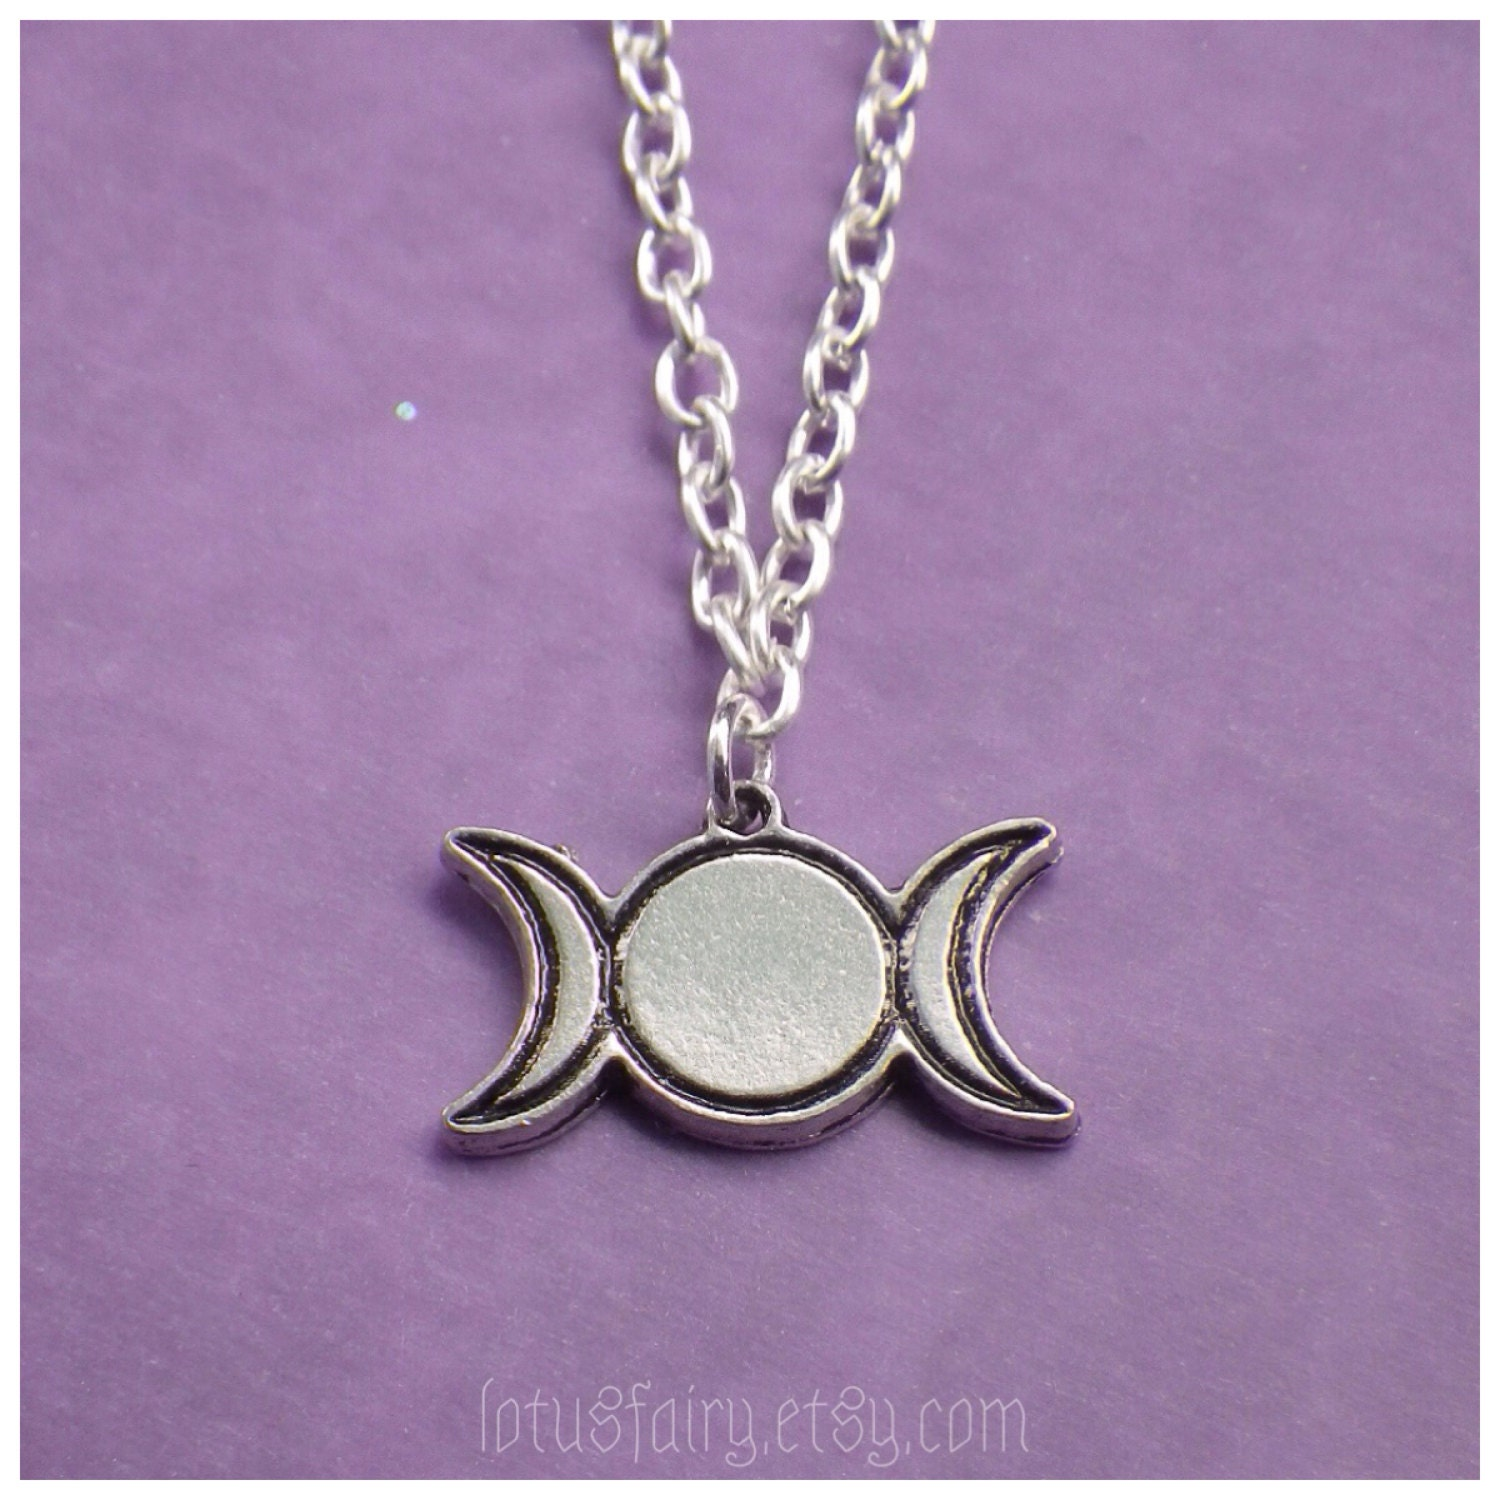 Triple goddess moon necklace pagan wiccan jewelry cord chain or triple goddess moon necklace pagan wiccan jewelry cord chain or tattoo choker aloadofball Choice Image